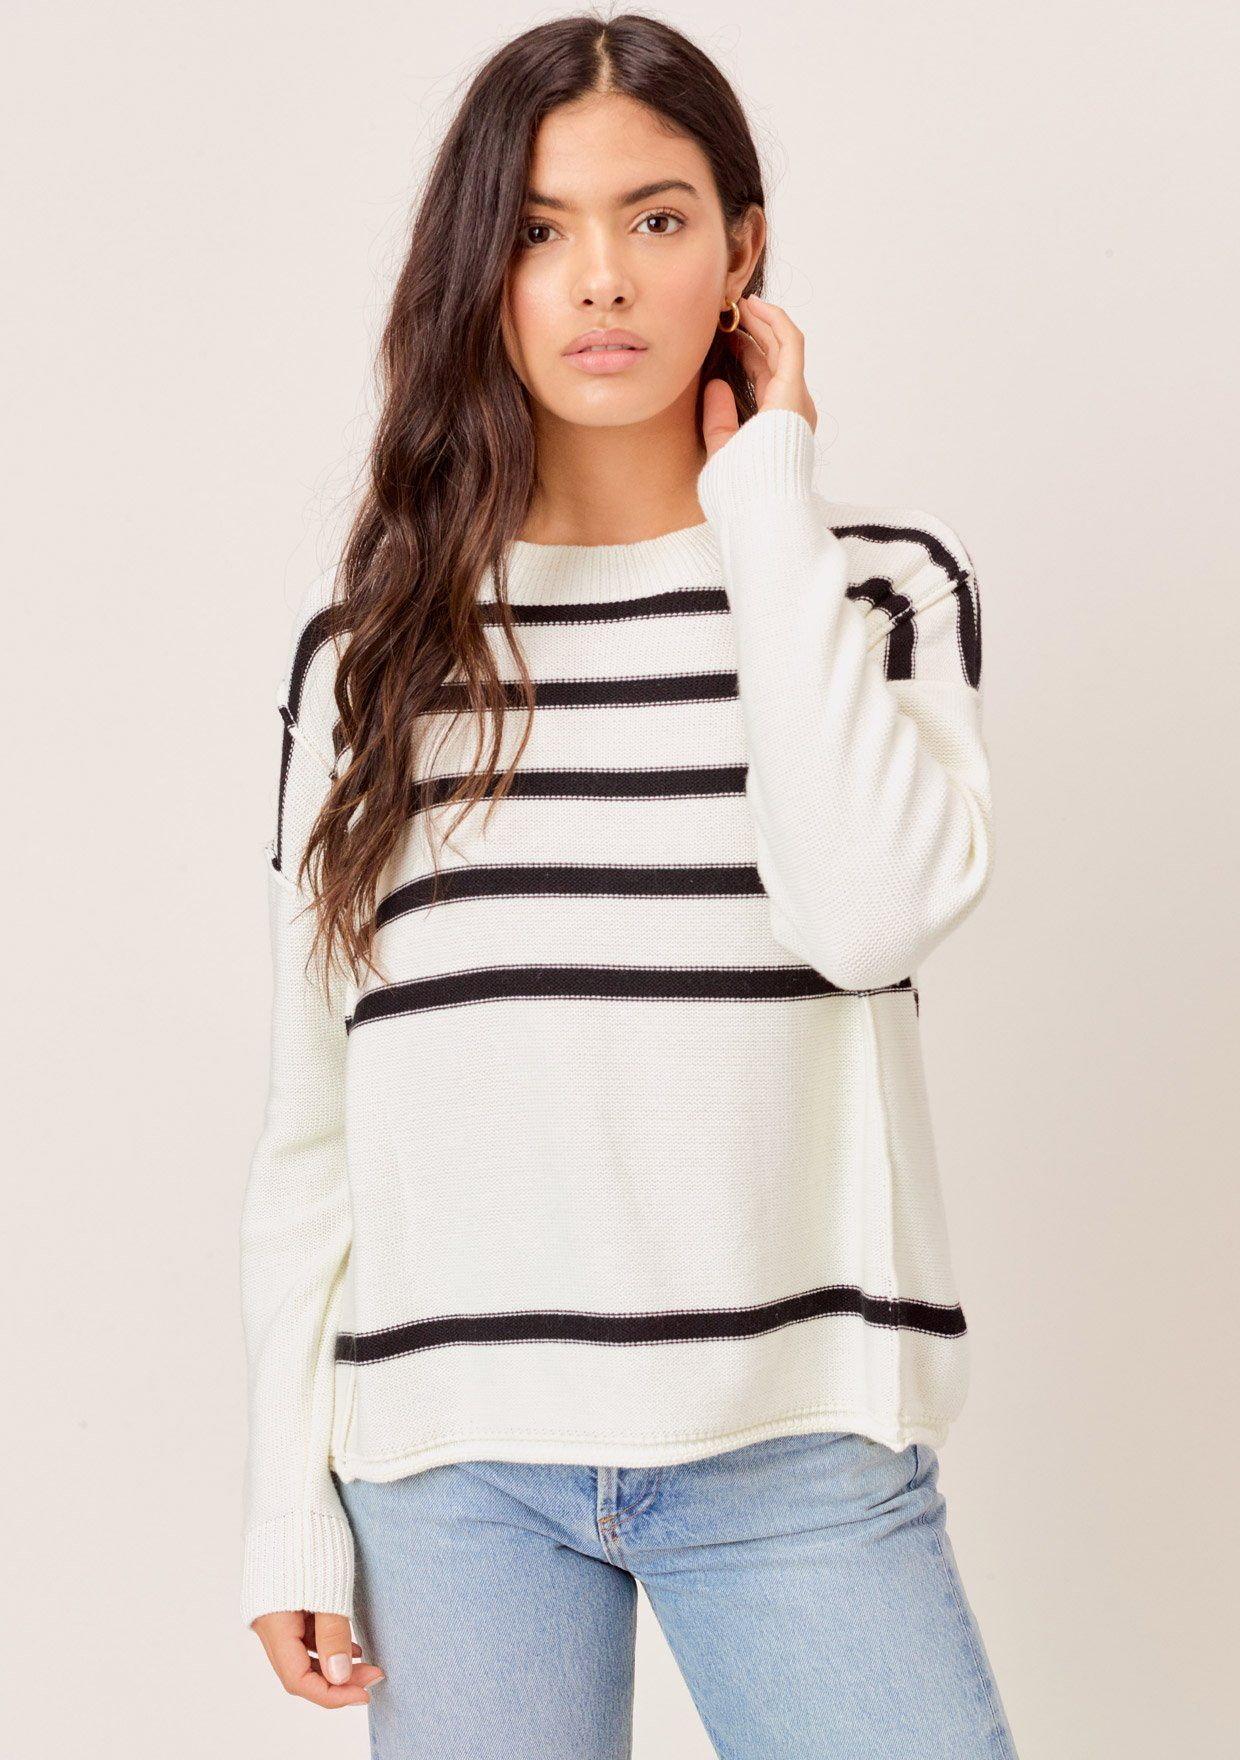 [Color: OffWhite/Black] Lovestitch offwhite/black lightweight, crew neck, striped knit sweater.